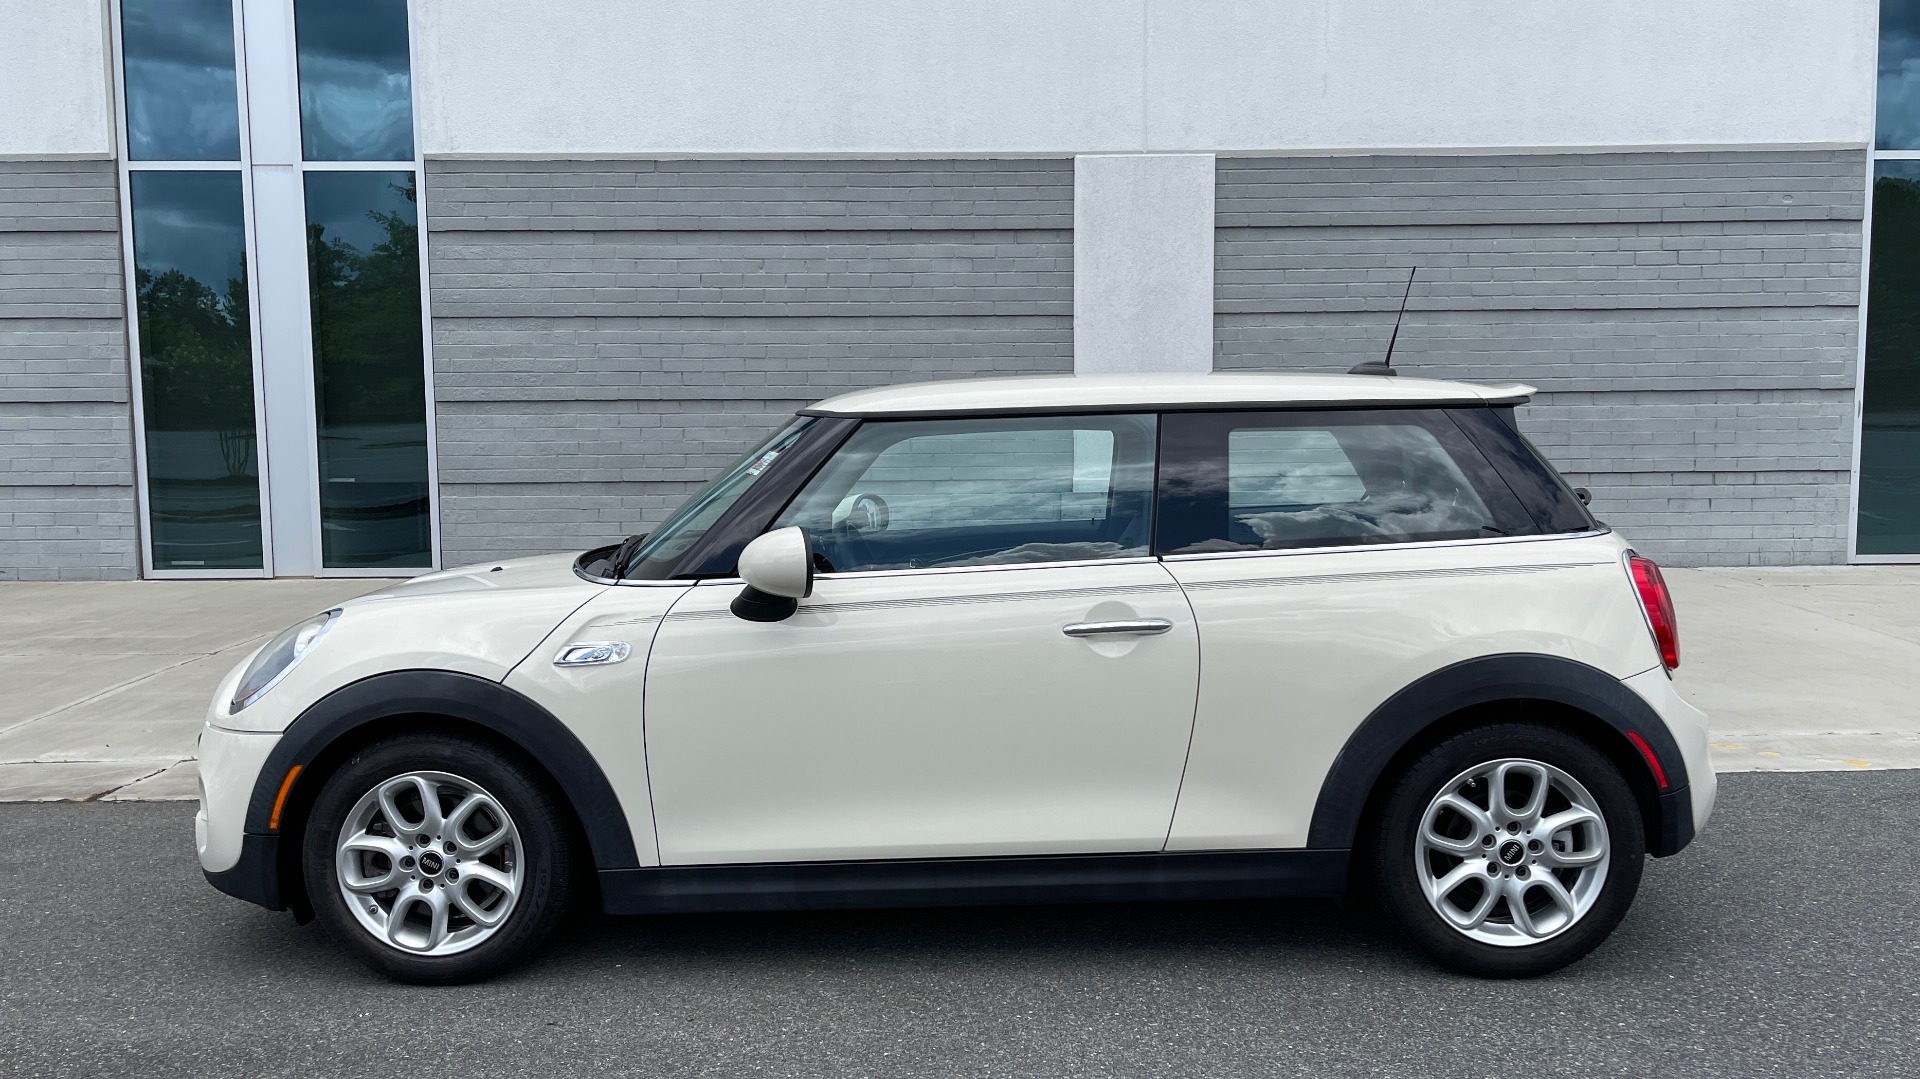 Used 2015 MINI COOPER HARDTOP S 2DR / 2.0L TURBO / FWD / 6-SPD MANUAL for sale $15,495 at Formula Imports in Charlotte NC 28227 3